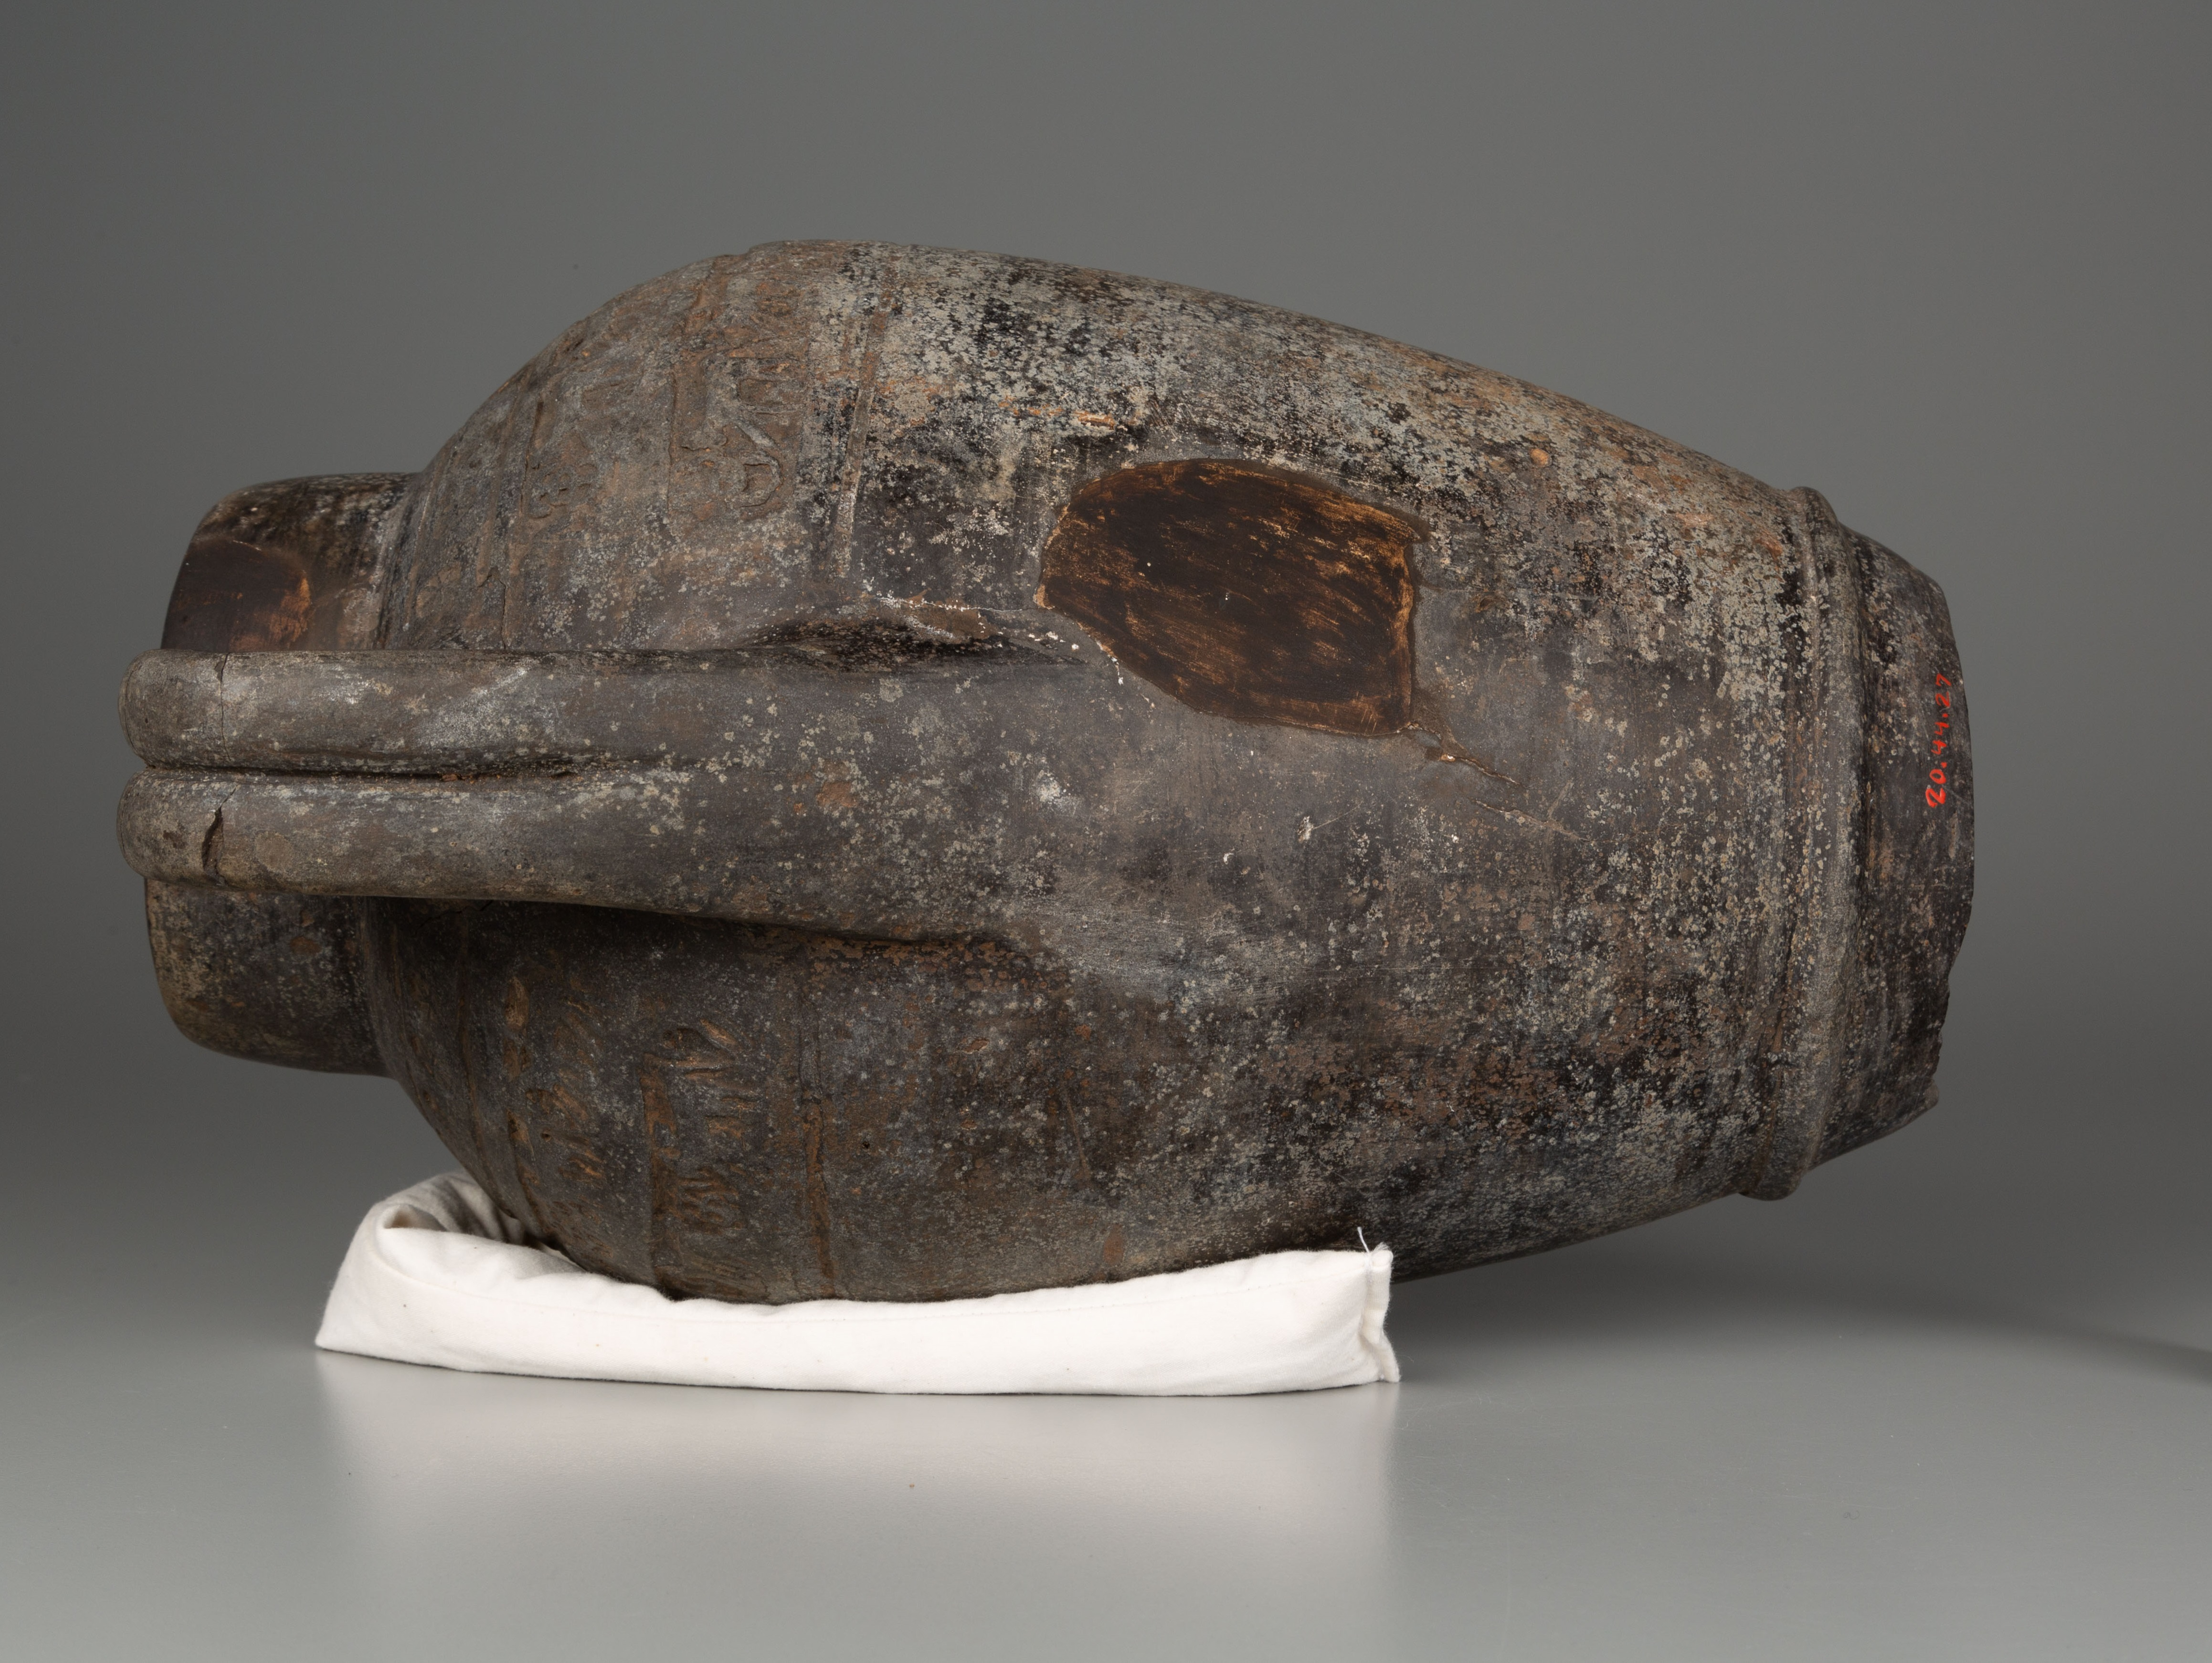 This photograph shows a worn brown vessel with a missing base. It is lying on its side, with one of the handles facing the viewer, and is placed on a cream-colored cloth. There are pale surface encrustations and one dark patch just above the handle.